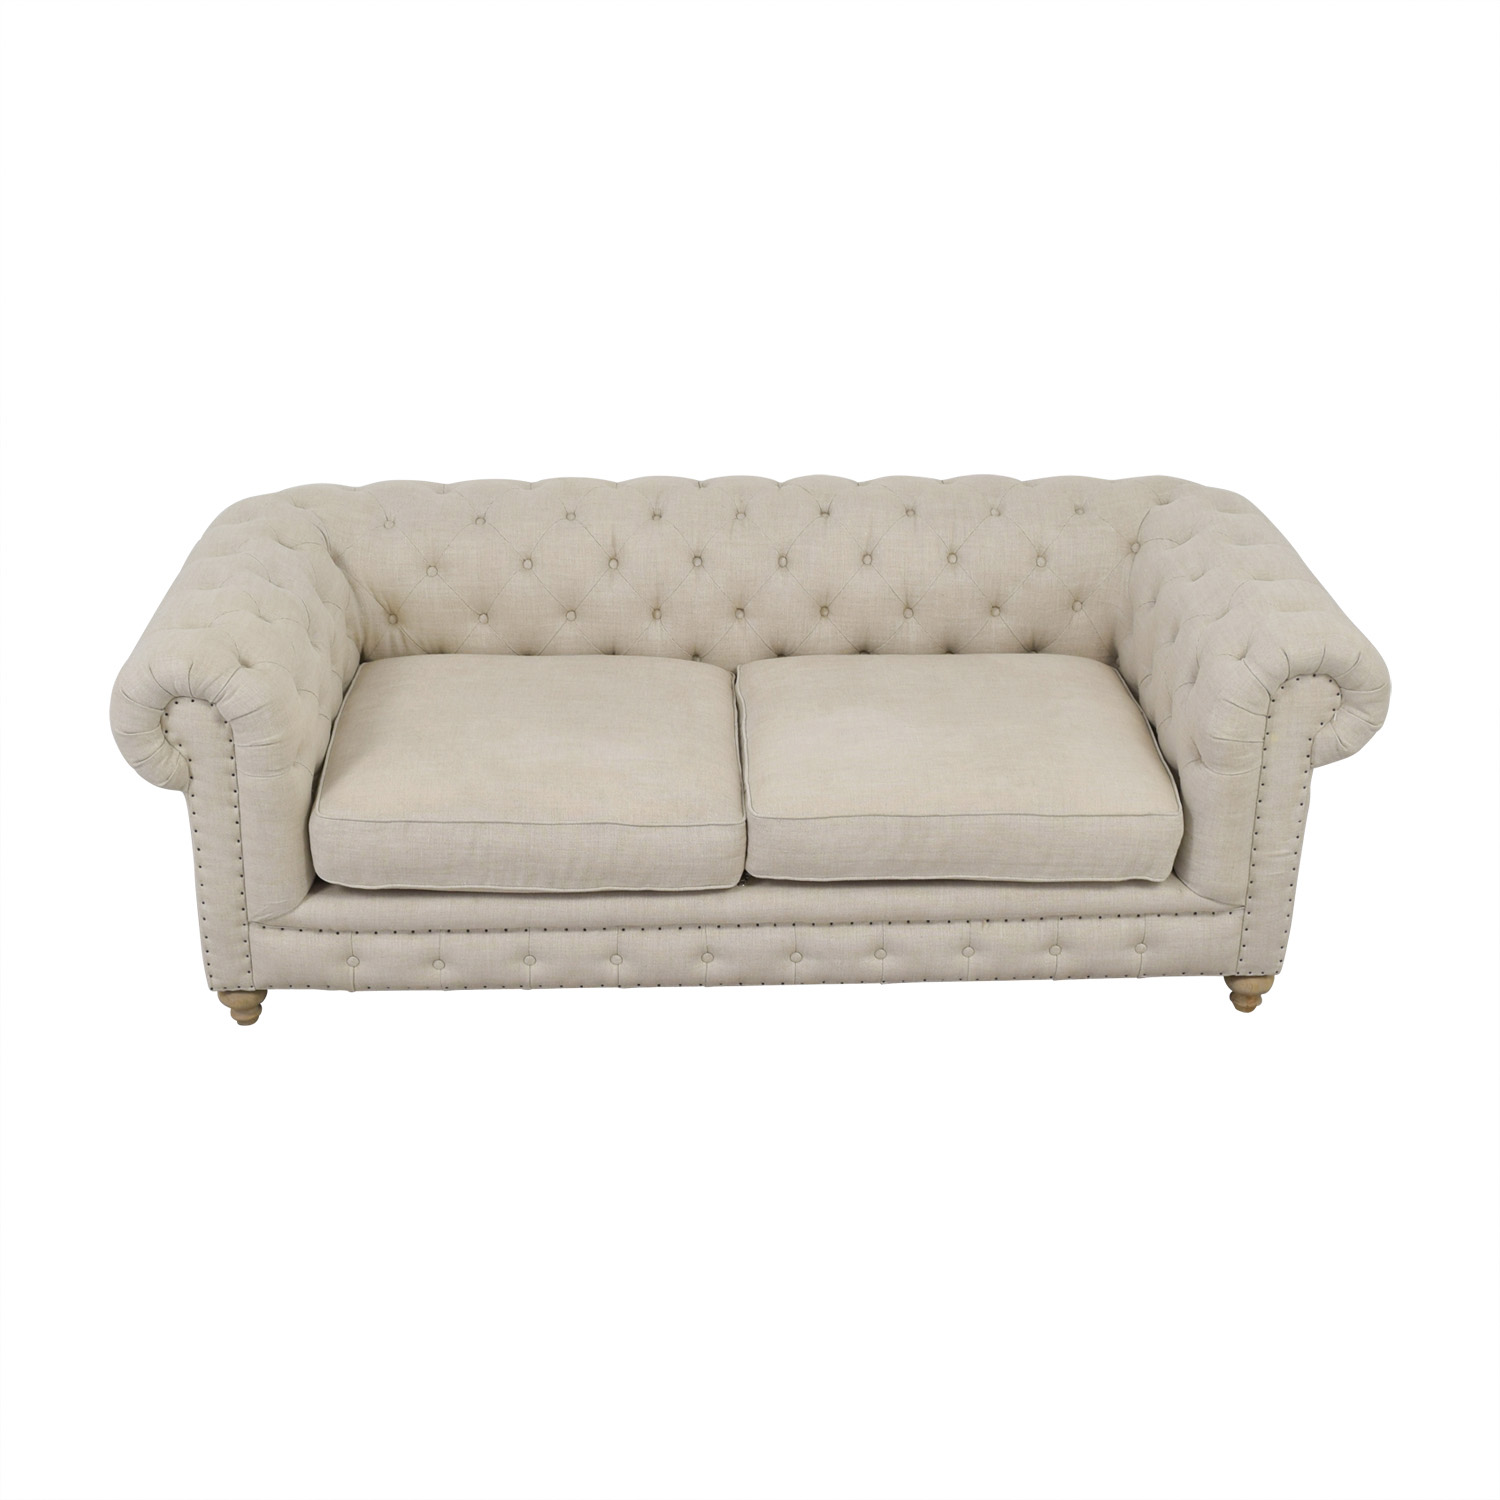 One Kings Lane One Kings Lane Chesterfield Beige LinenTufted Sofa dimensions